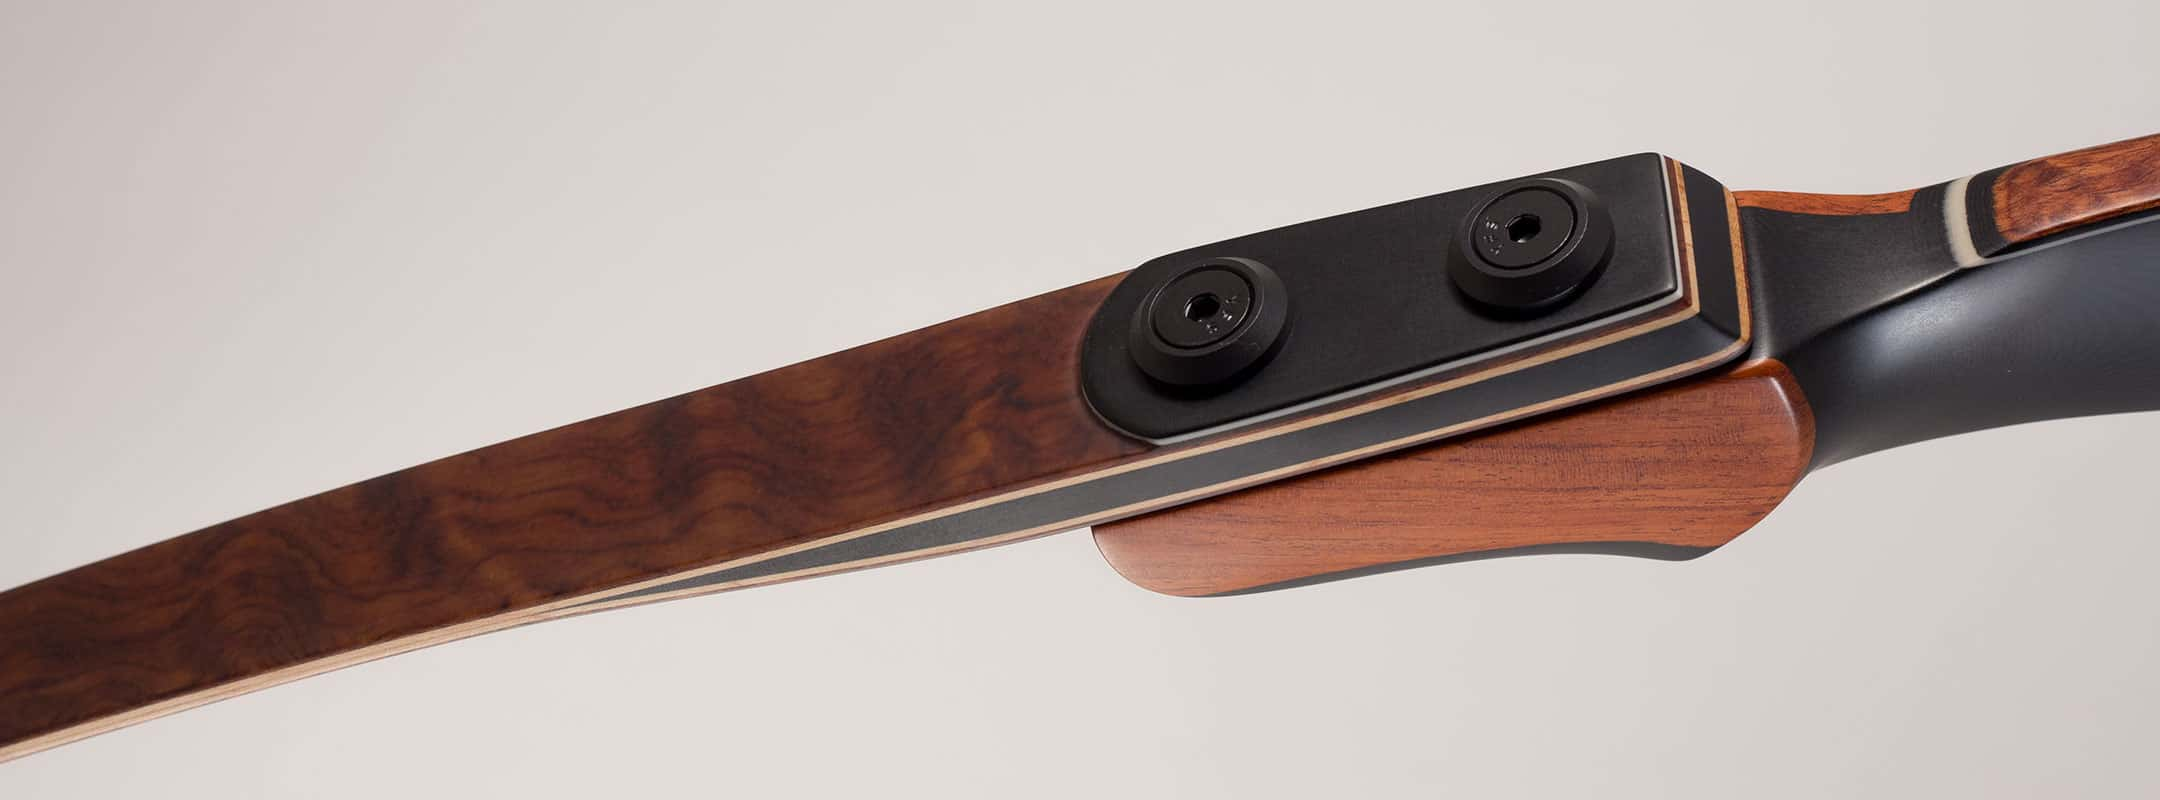 American made longbow handcrafted of wood and phenolic